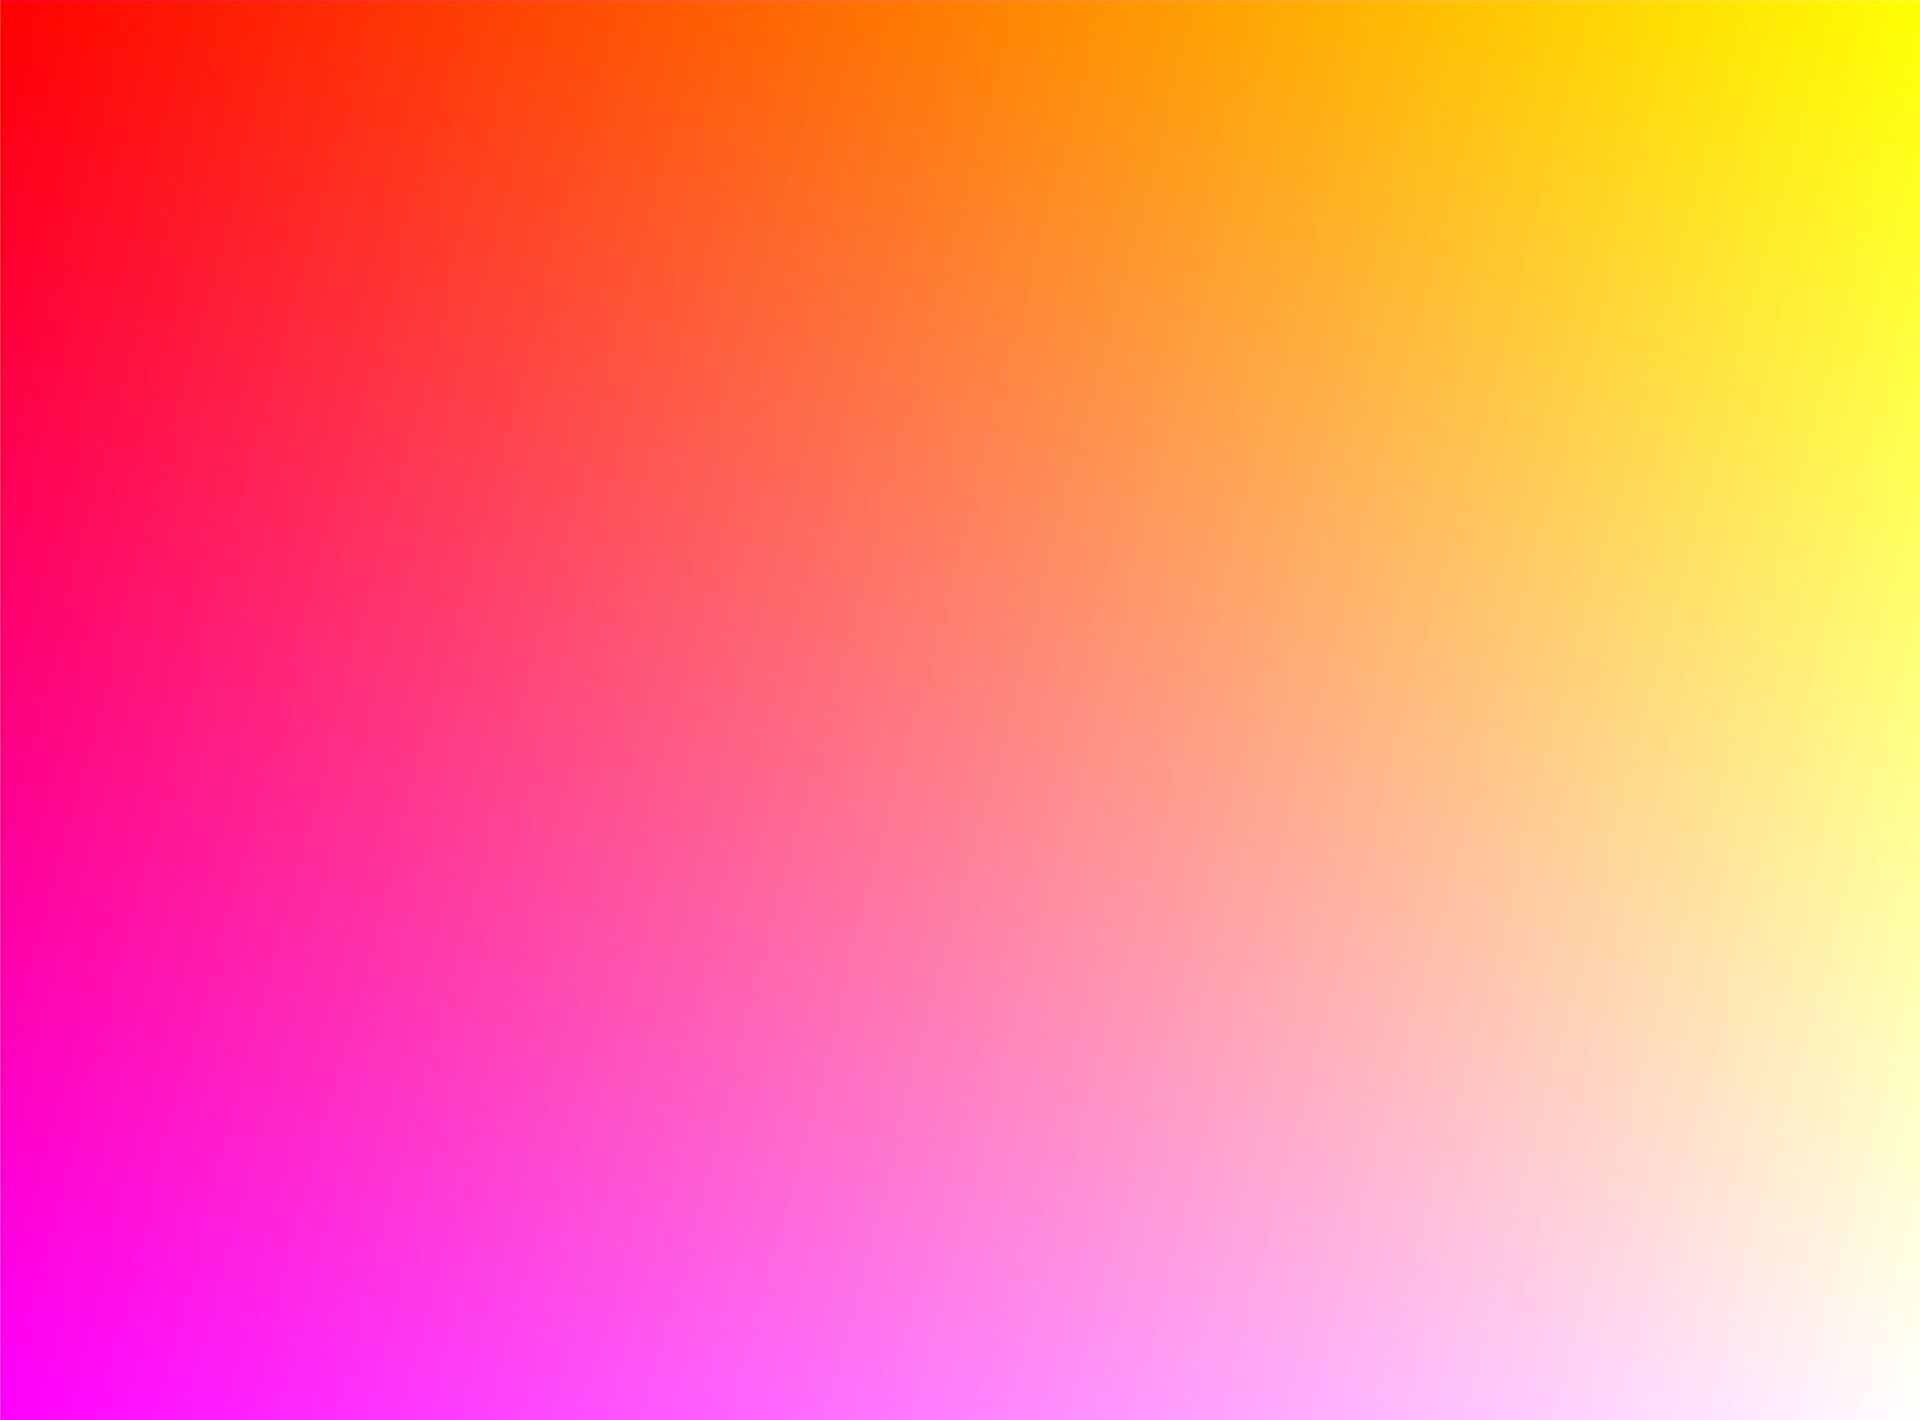 A smooth gradient image